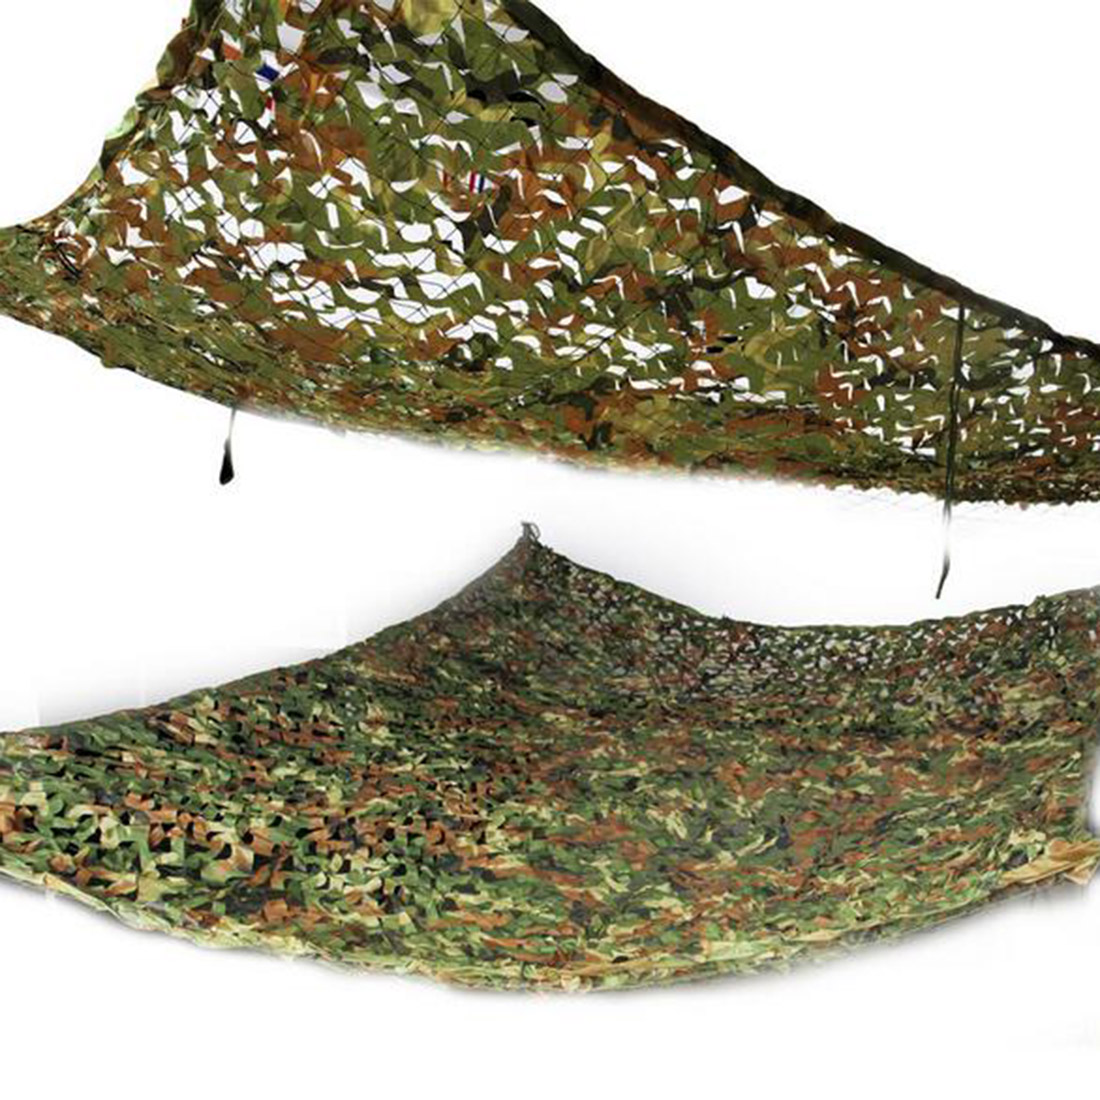 2x3m Woodland Camouflage Net Camo Netting Camping Beach Military Hunting Large Shelter Sun Shade Awning Tent 123 13 624 41 801000[